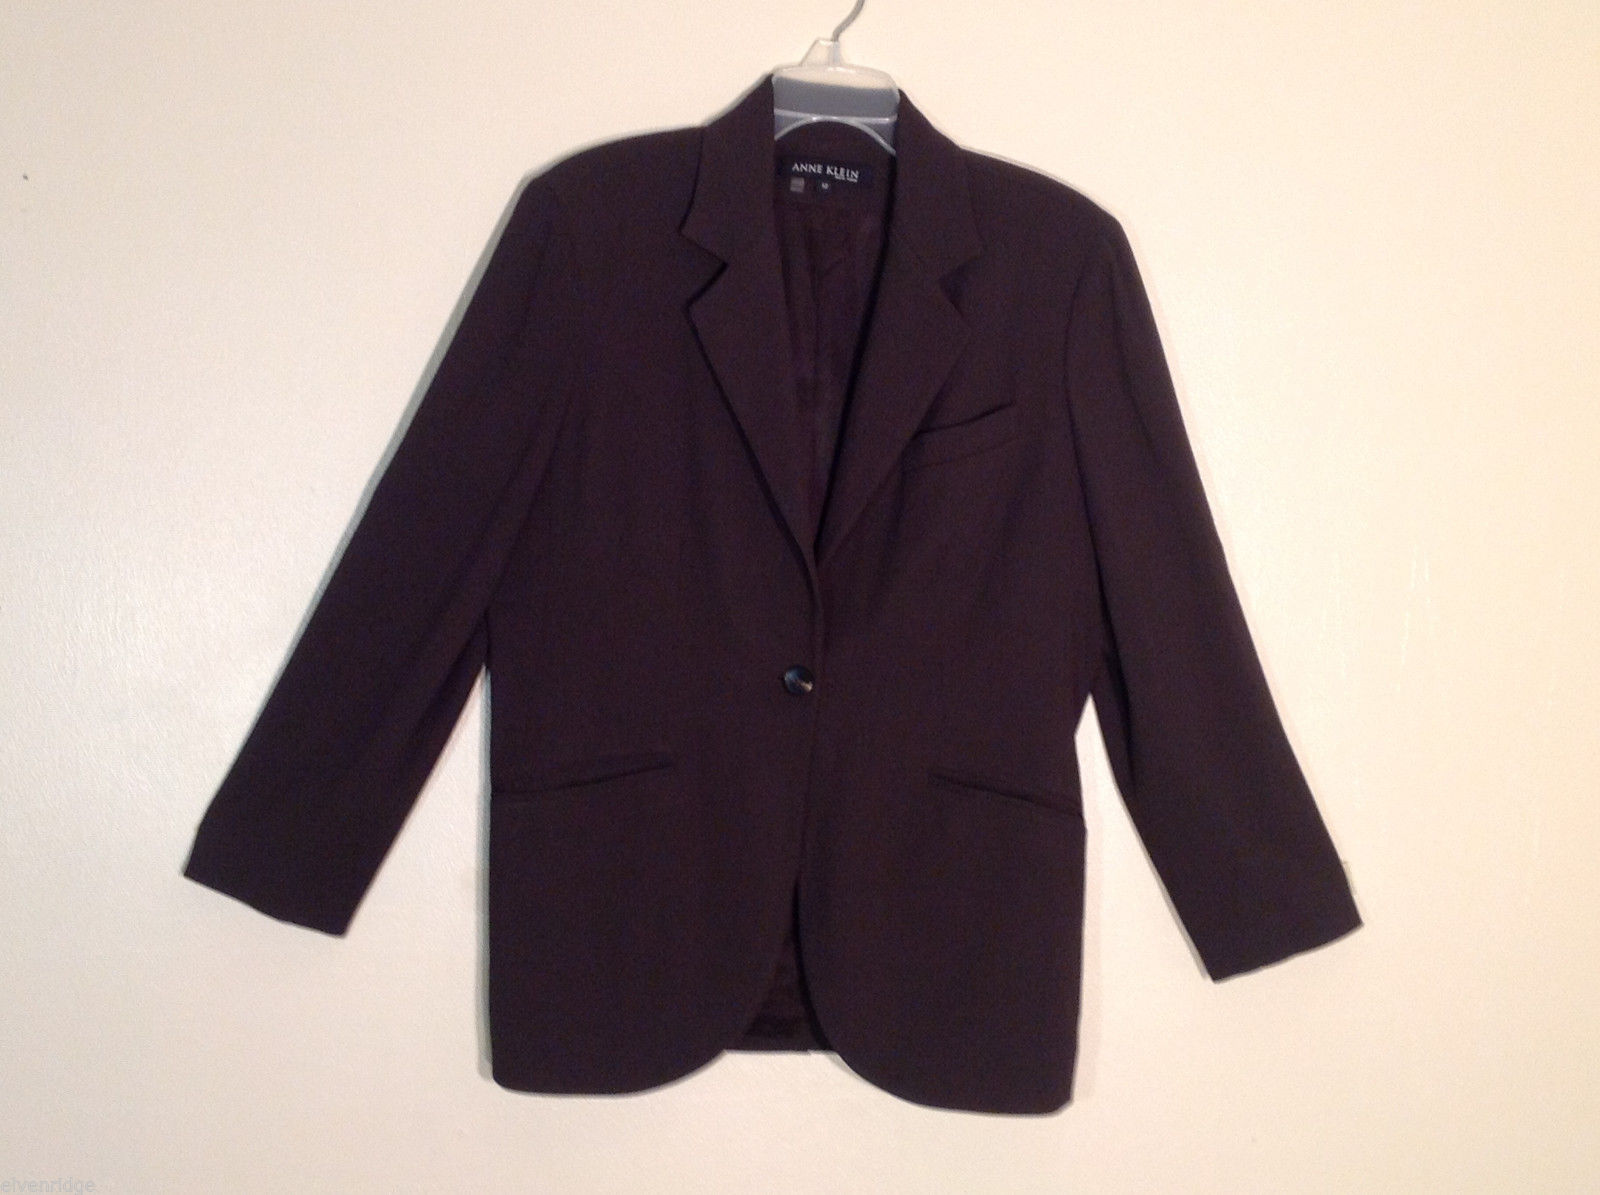 Womens Anne Klein NY Size 12 Wool Blend Bark Brown Classic Blazer Jacket